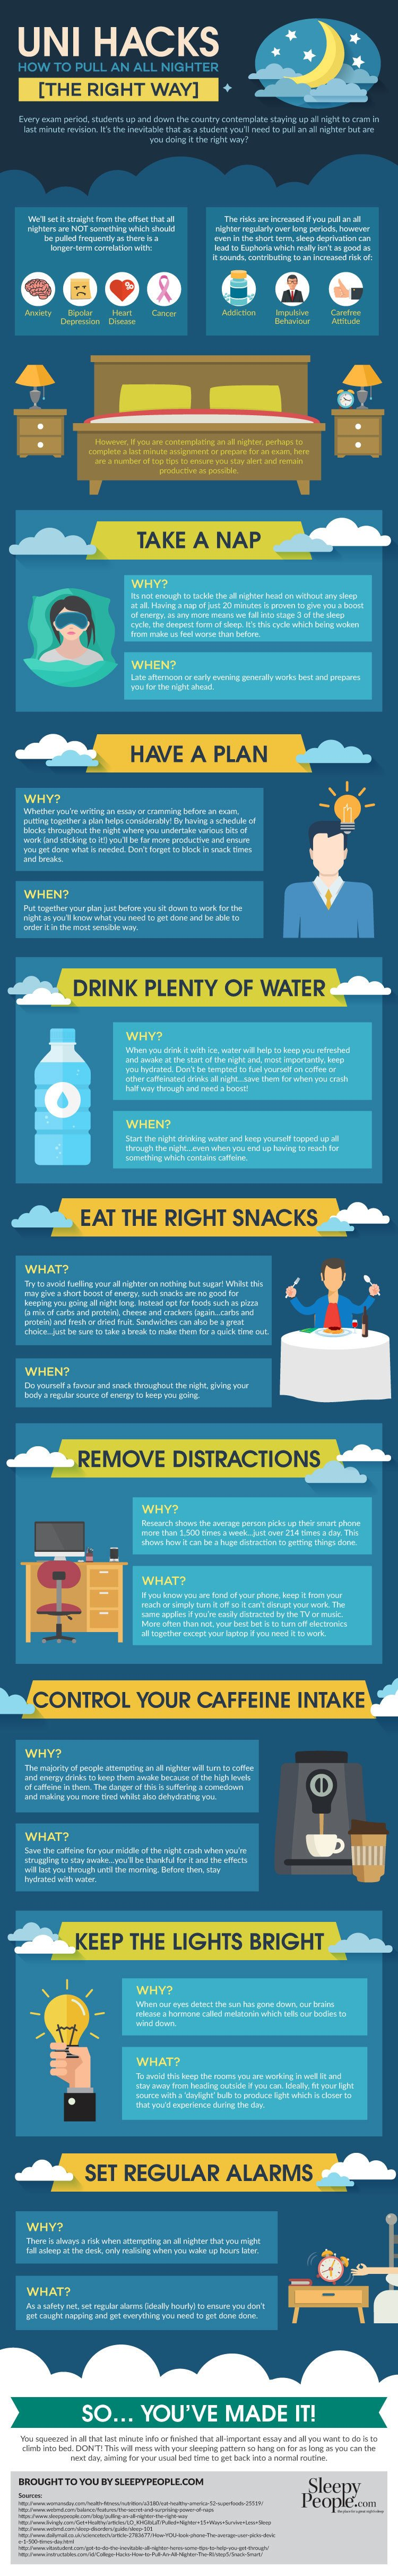 Uni Hacks: How To Pull An All Nighter the Right Way Infographic